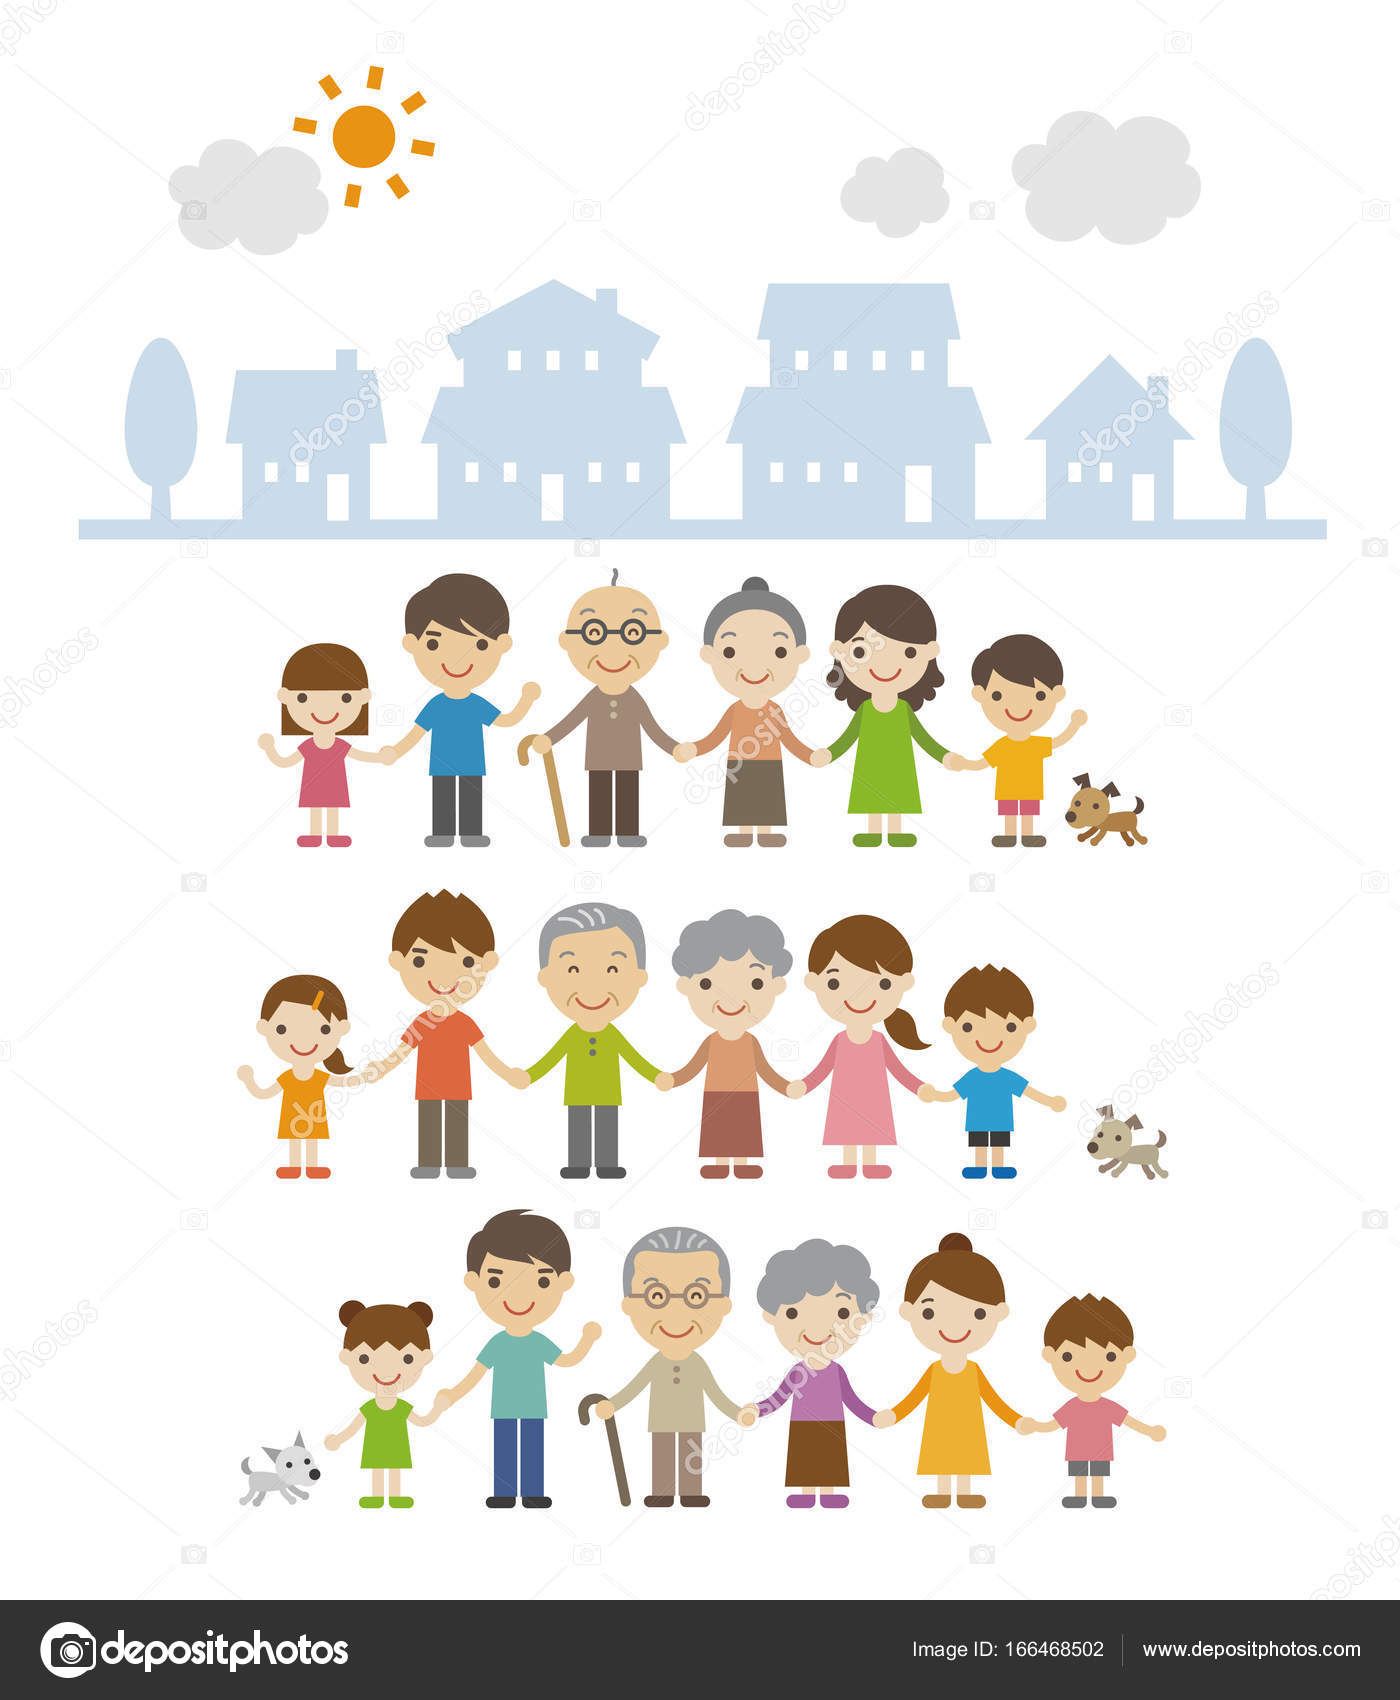 Diverse Families Clipart : diverse, families, clipart, Multicultural, Family, Stock, Cliparts,, Royalty, Asian, Children, Vectors, Download, Depositphotos®